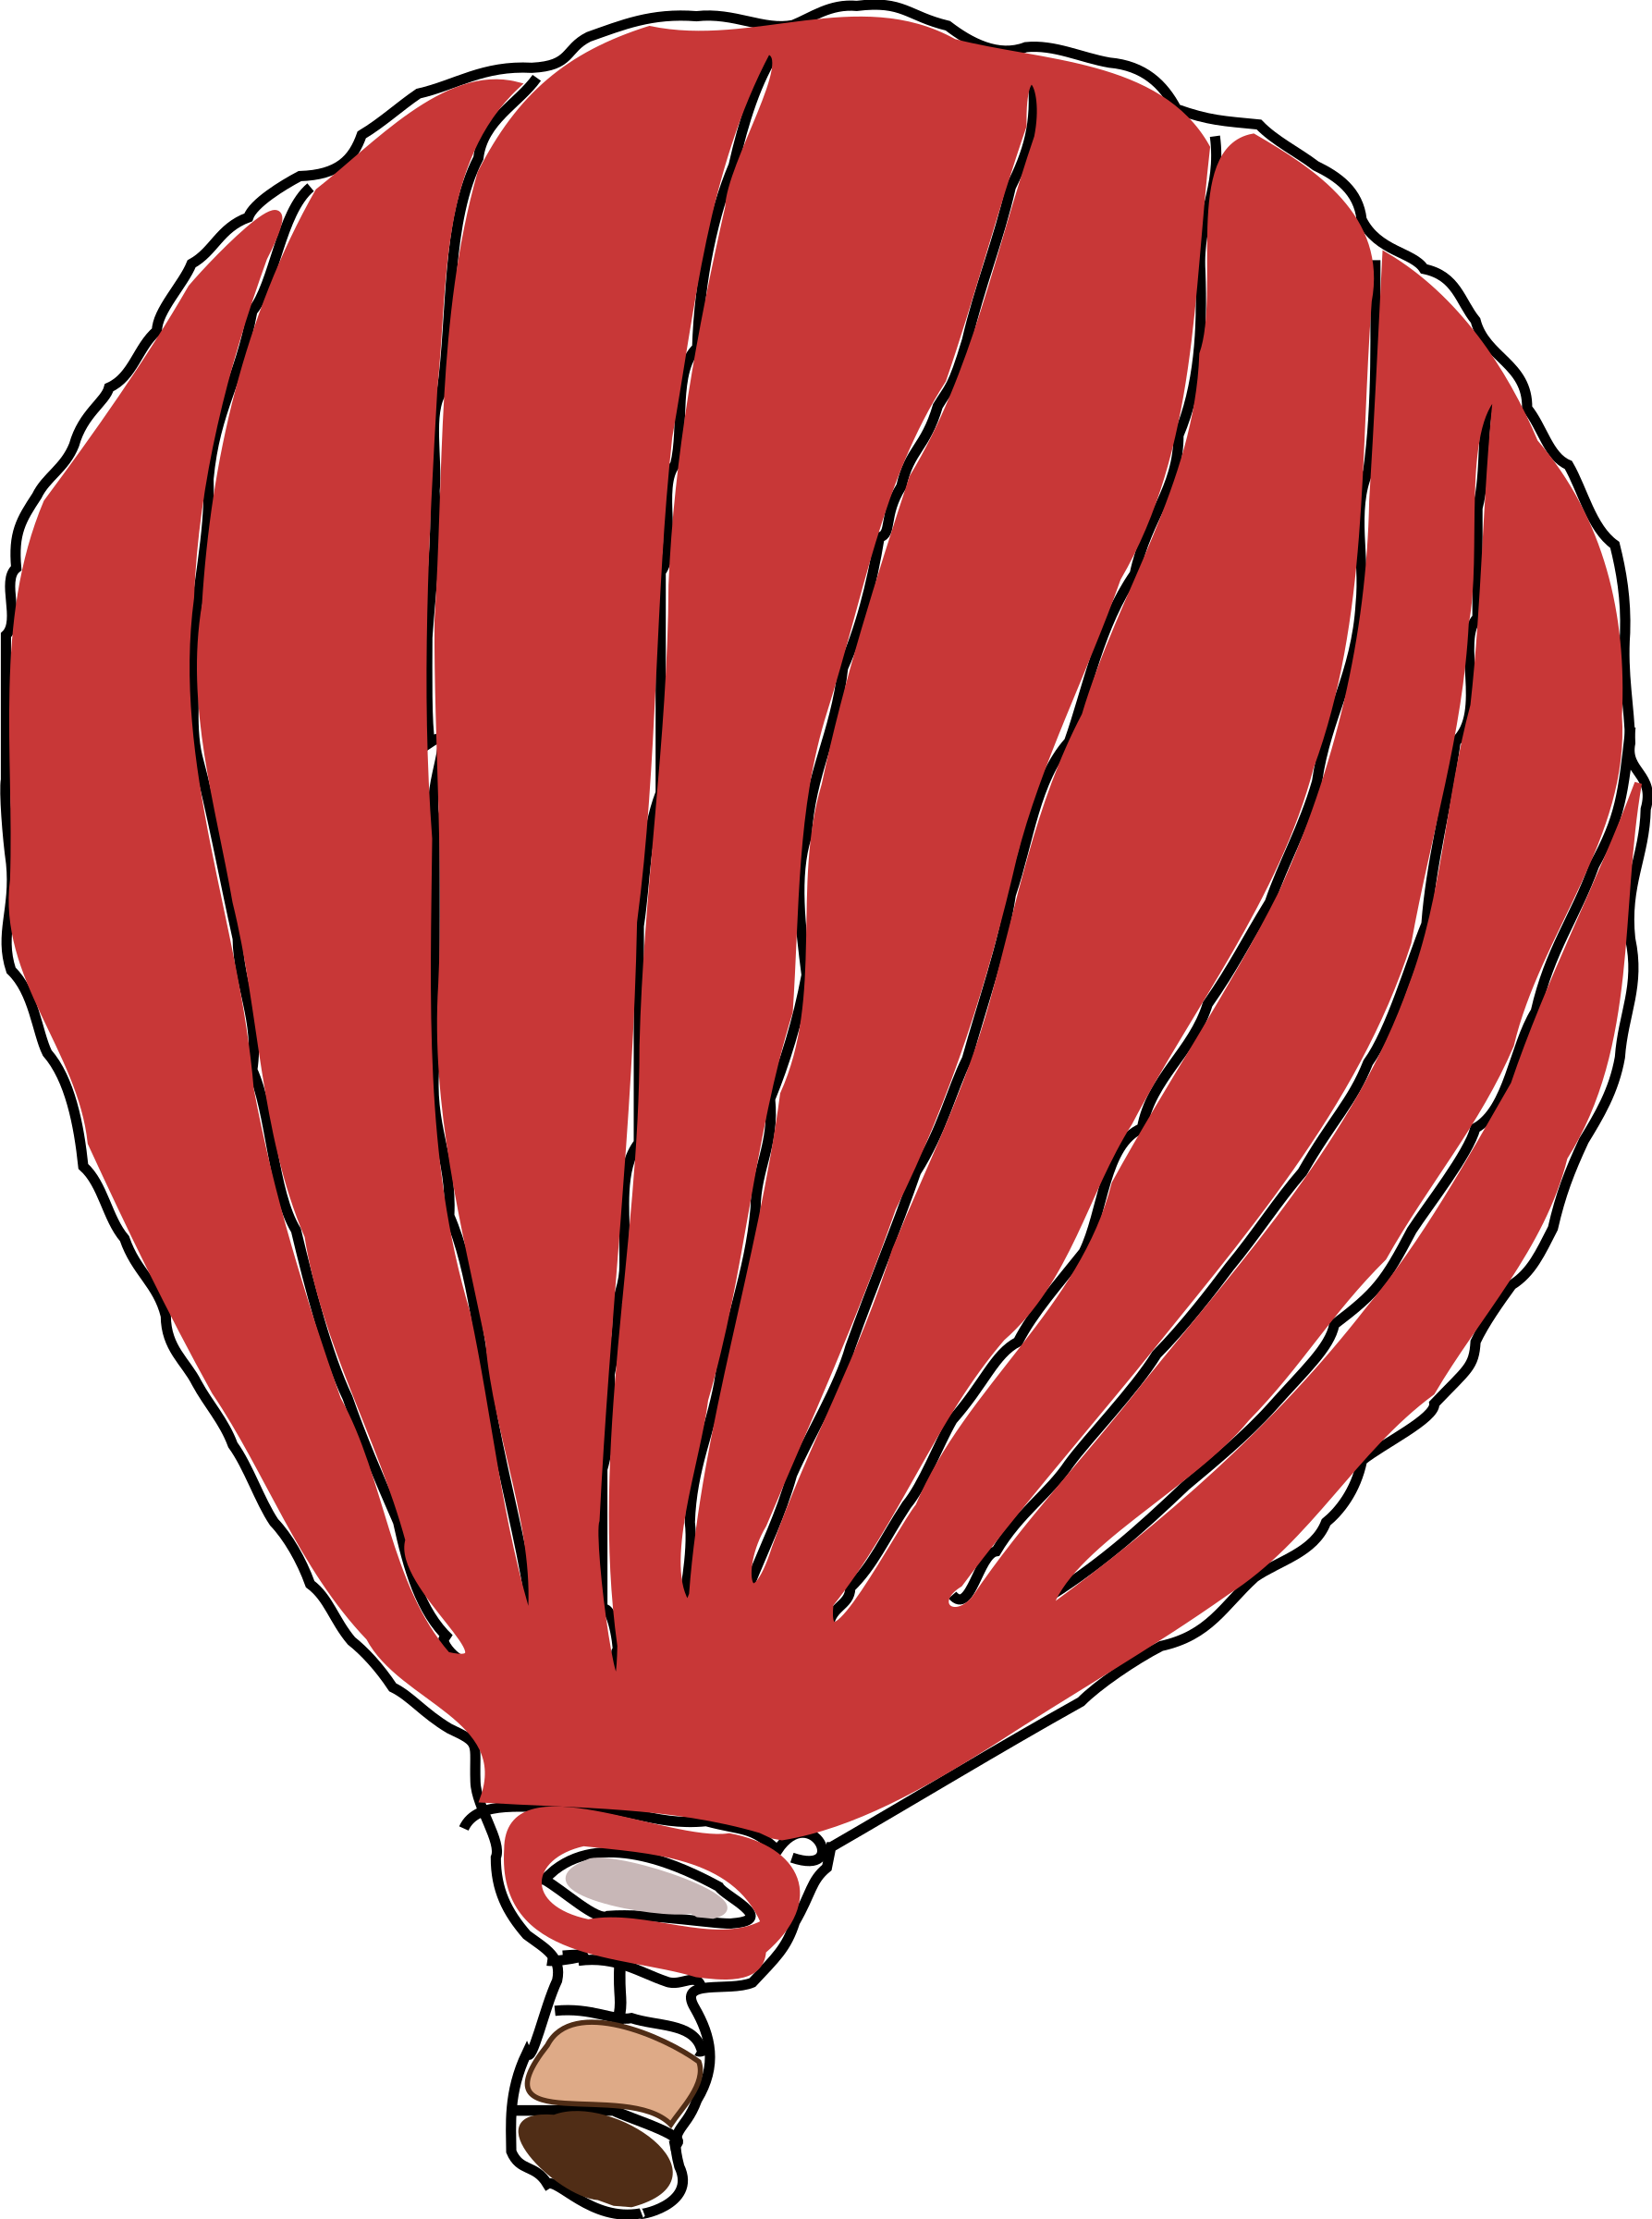 Hot Air Balloon by mazeo